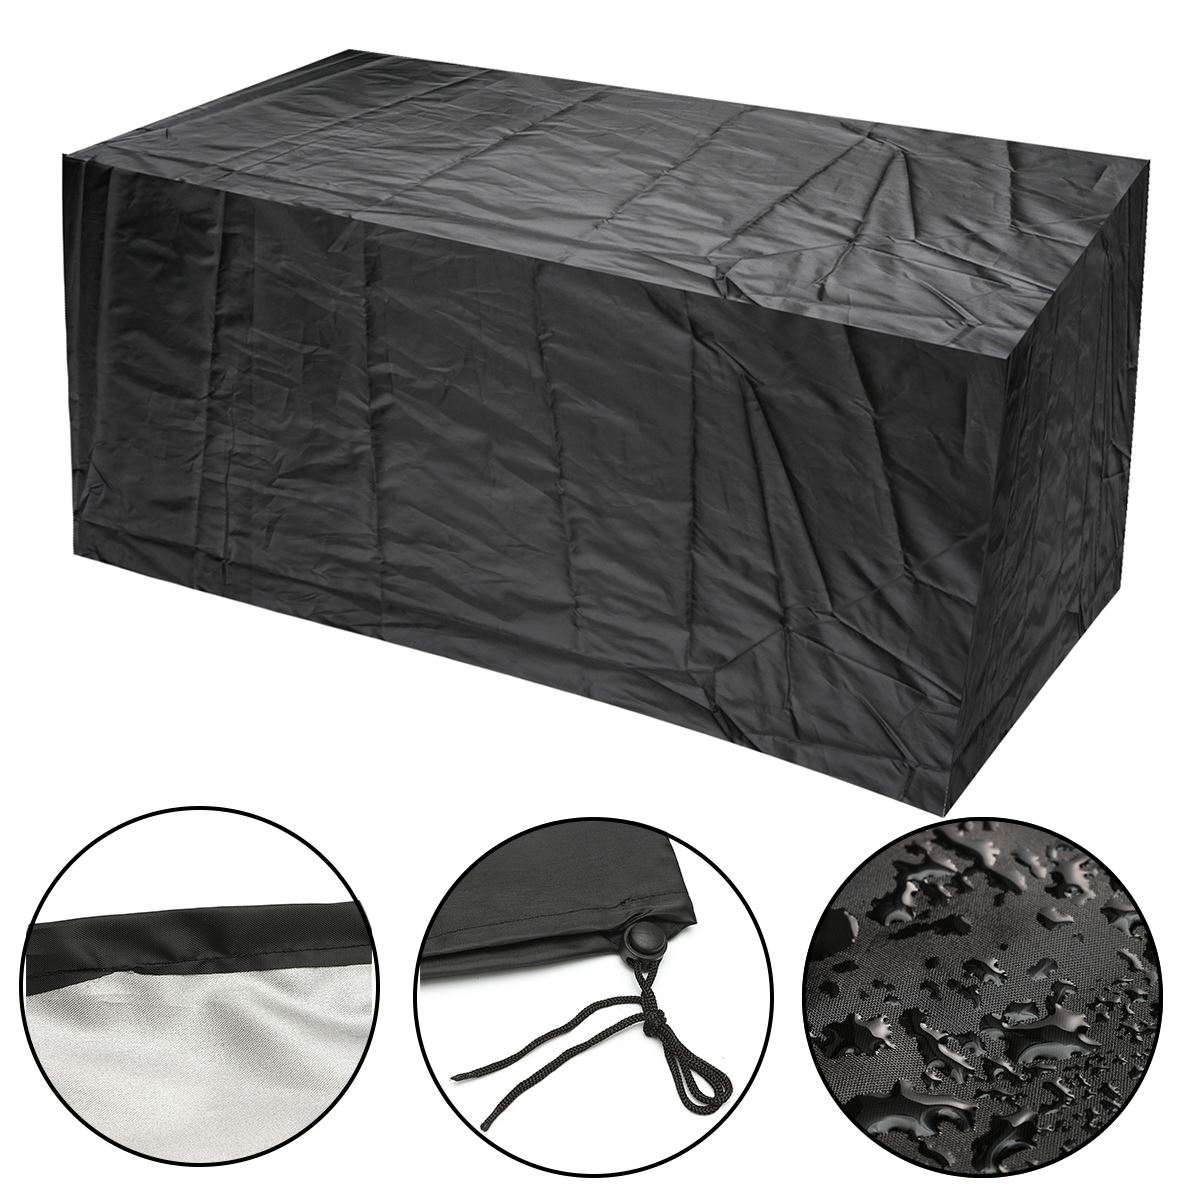 wedlies Outdoor Waterproof Set Cover Chair Table Cloth